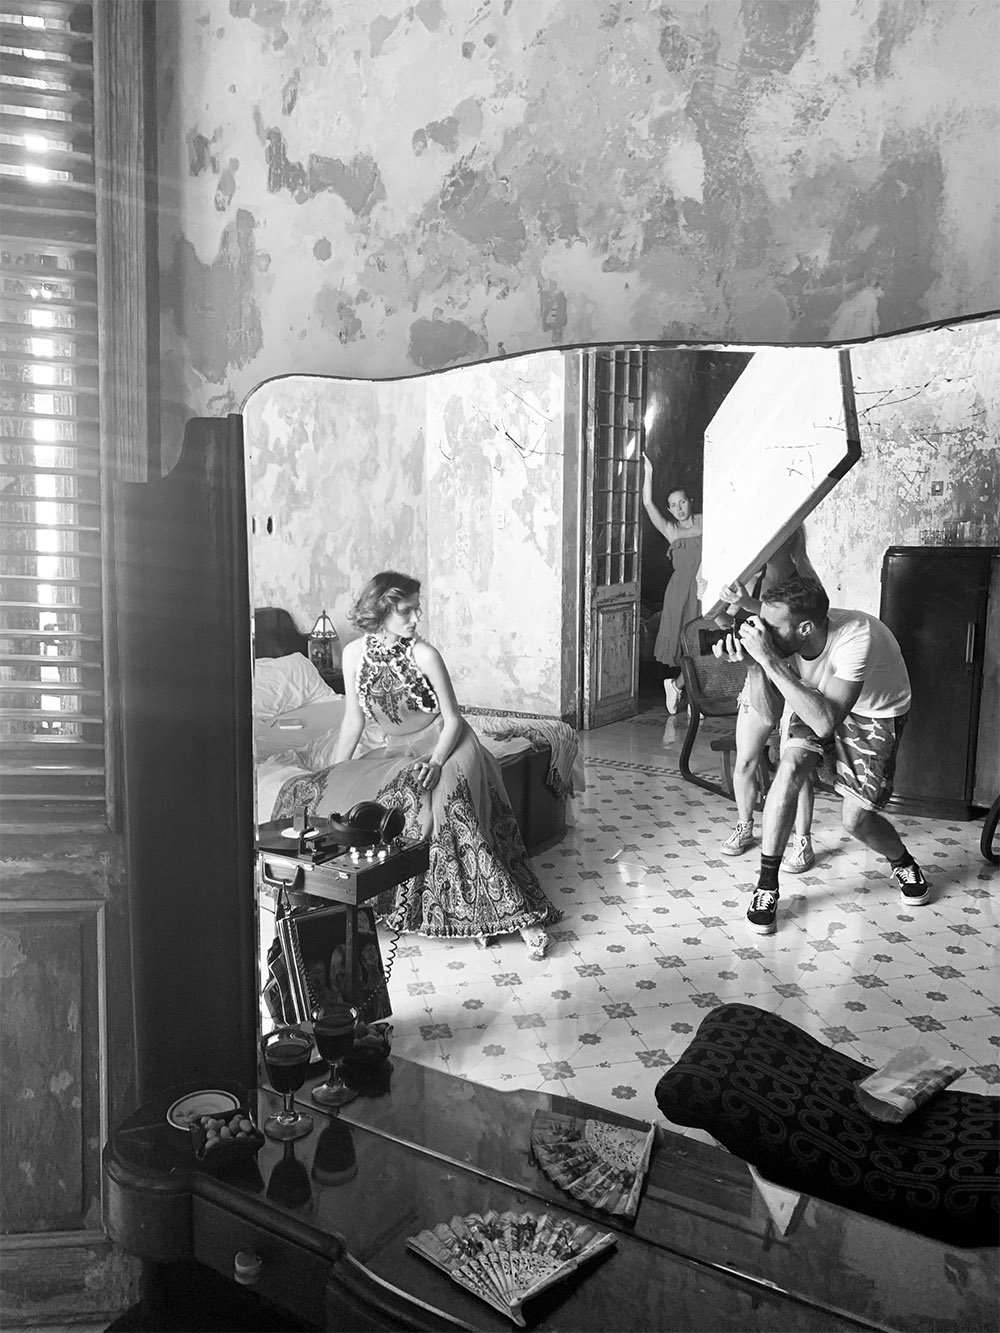 A black and white behind the scenes shot of Spring 19. In the reflection of an antique mirror, our model is being photographed while posing on the end of a bed